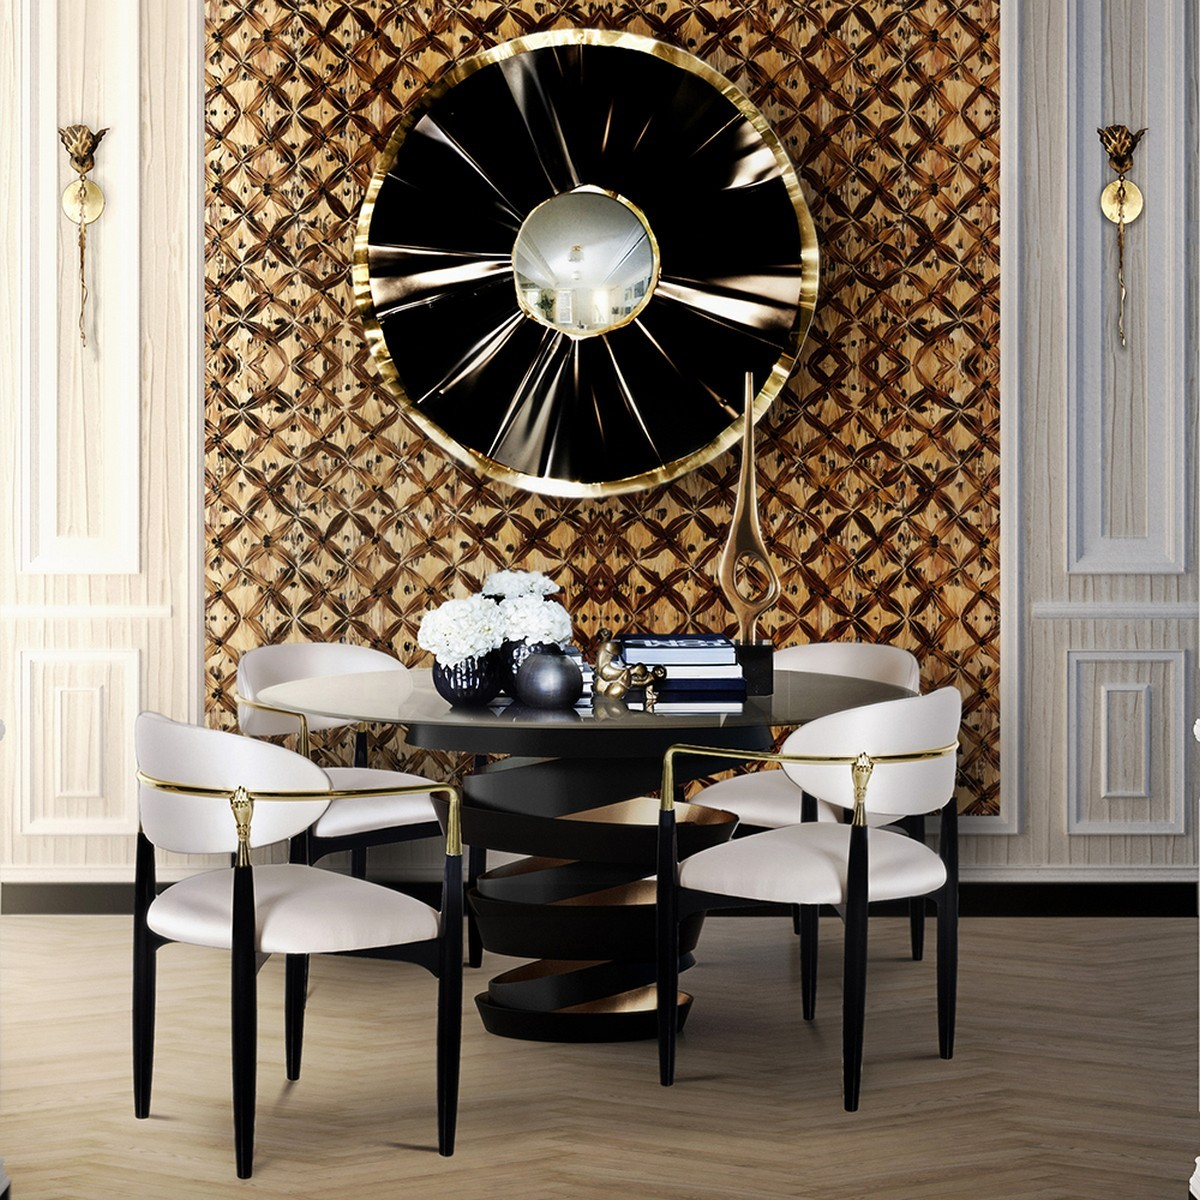 5 Modern Dining Table Designs You Shouldn't Miss modern dining table designs 5 Modern Dining Table Designs You Shouldn't Miss intuition2